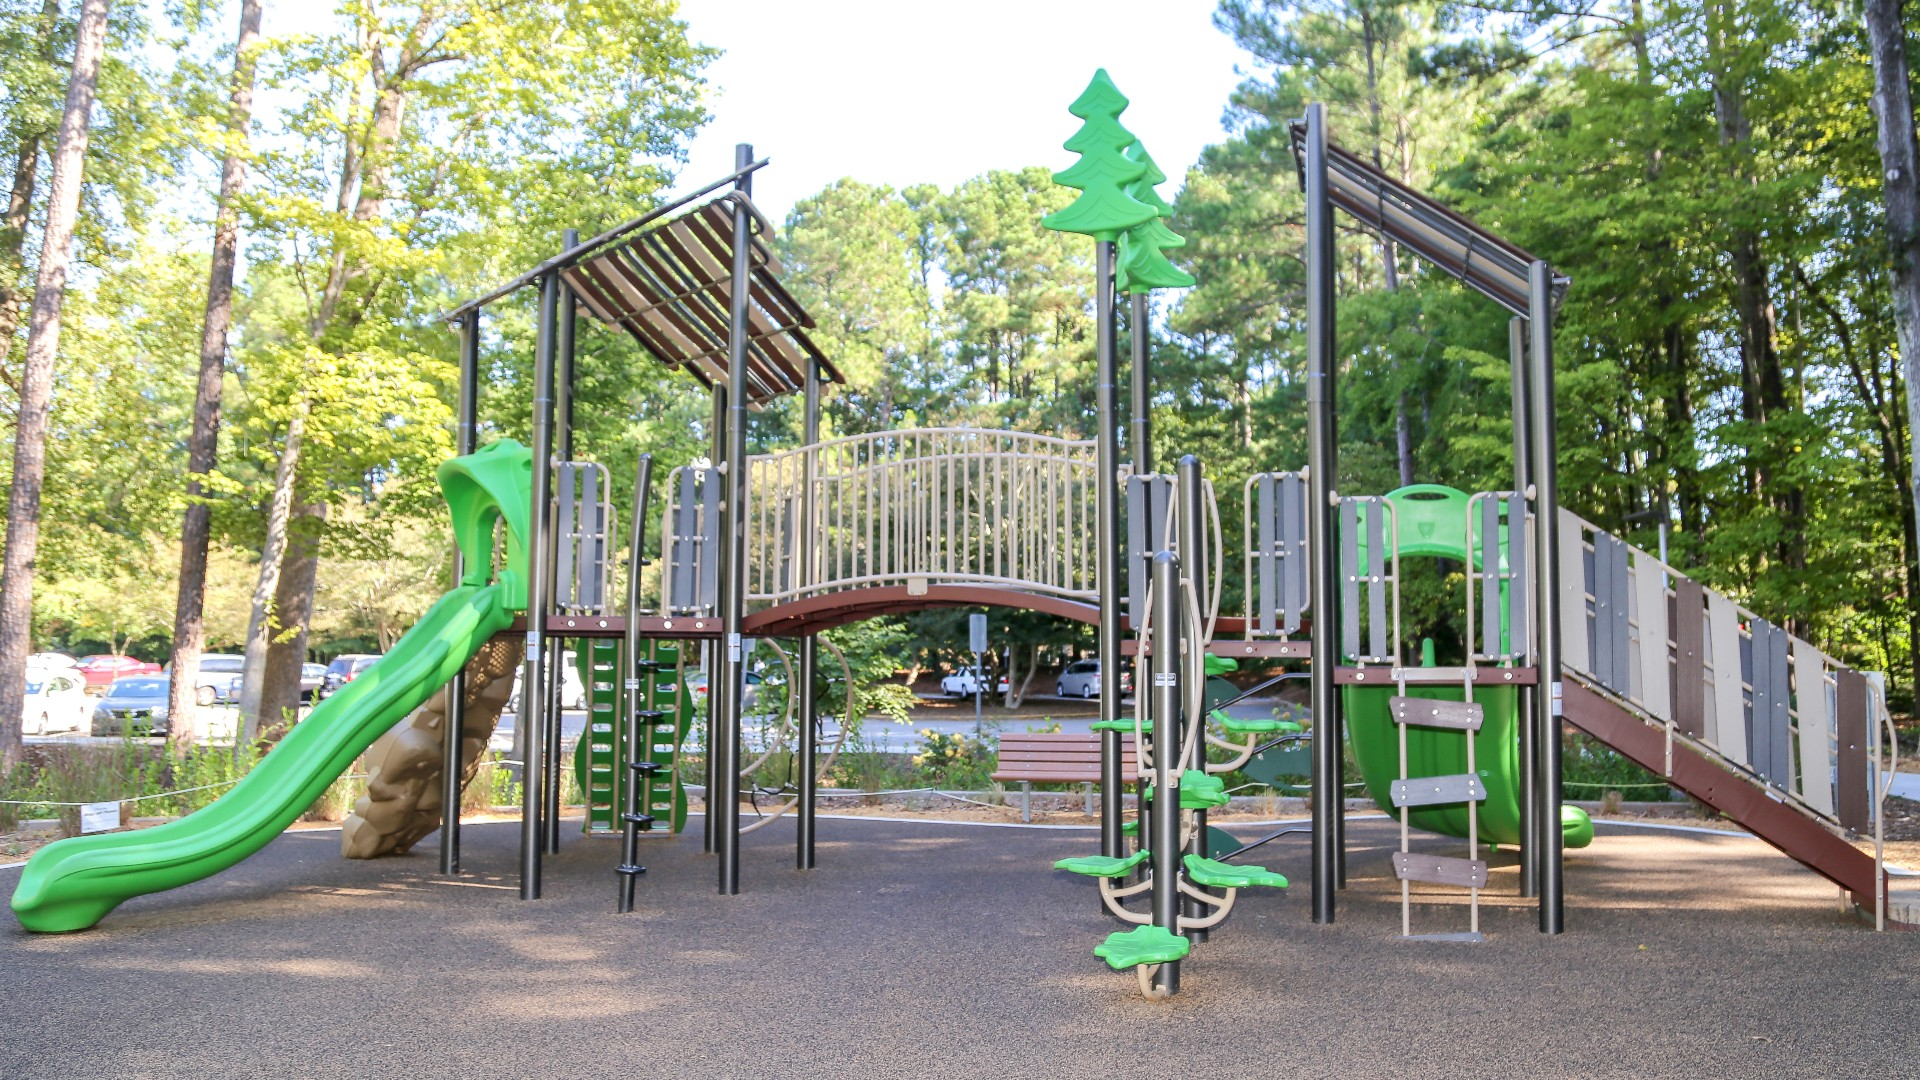 A large outdoor playground with climbing rocks, a slide, swings and more.